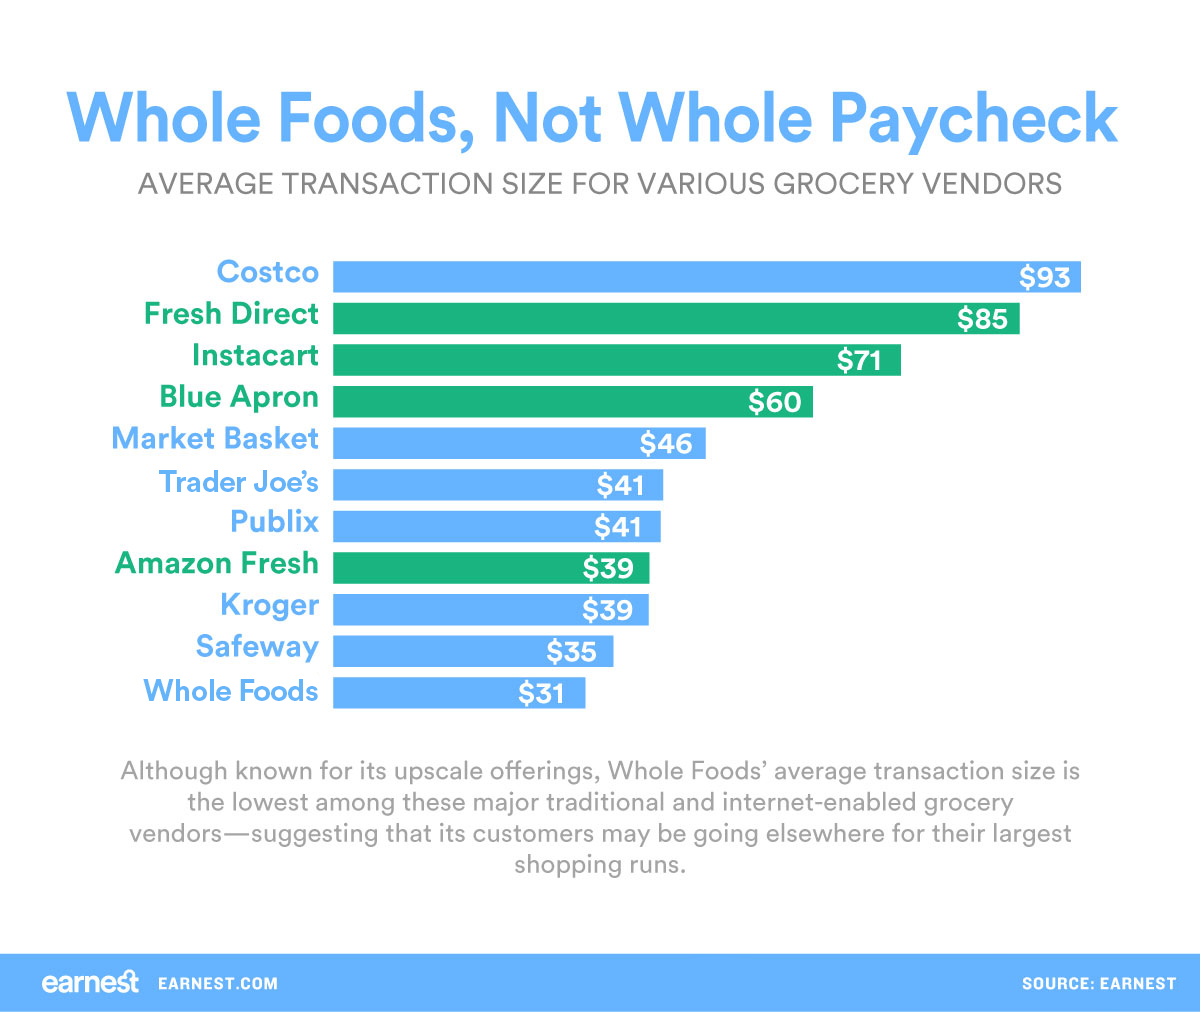 whole-foods-not-whole-paycheck-4